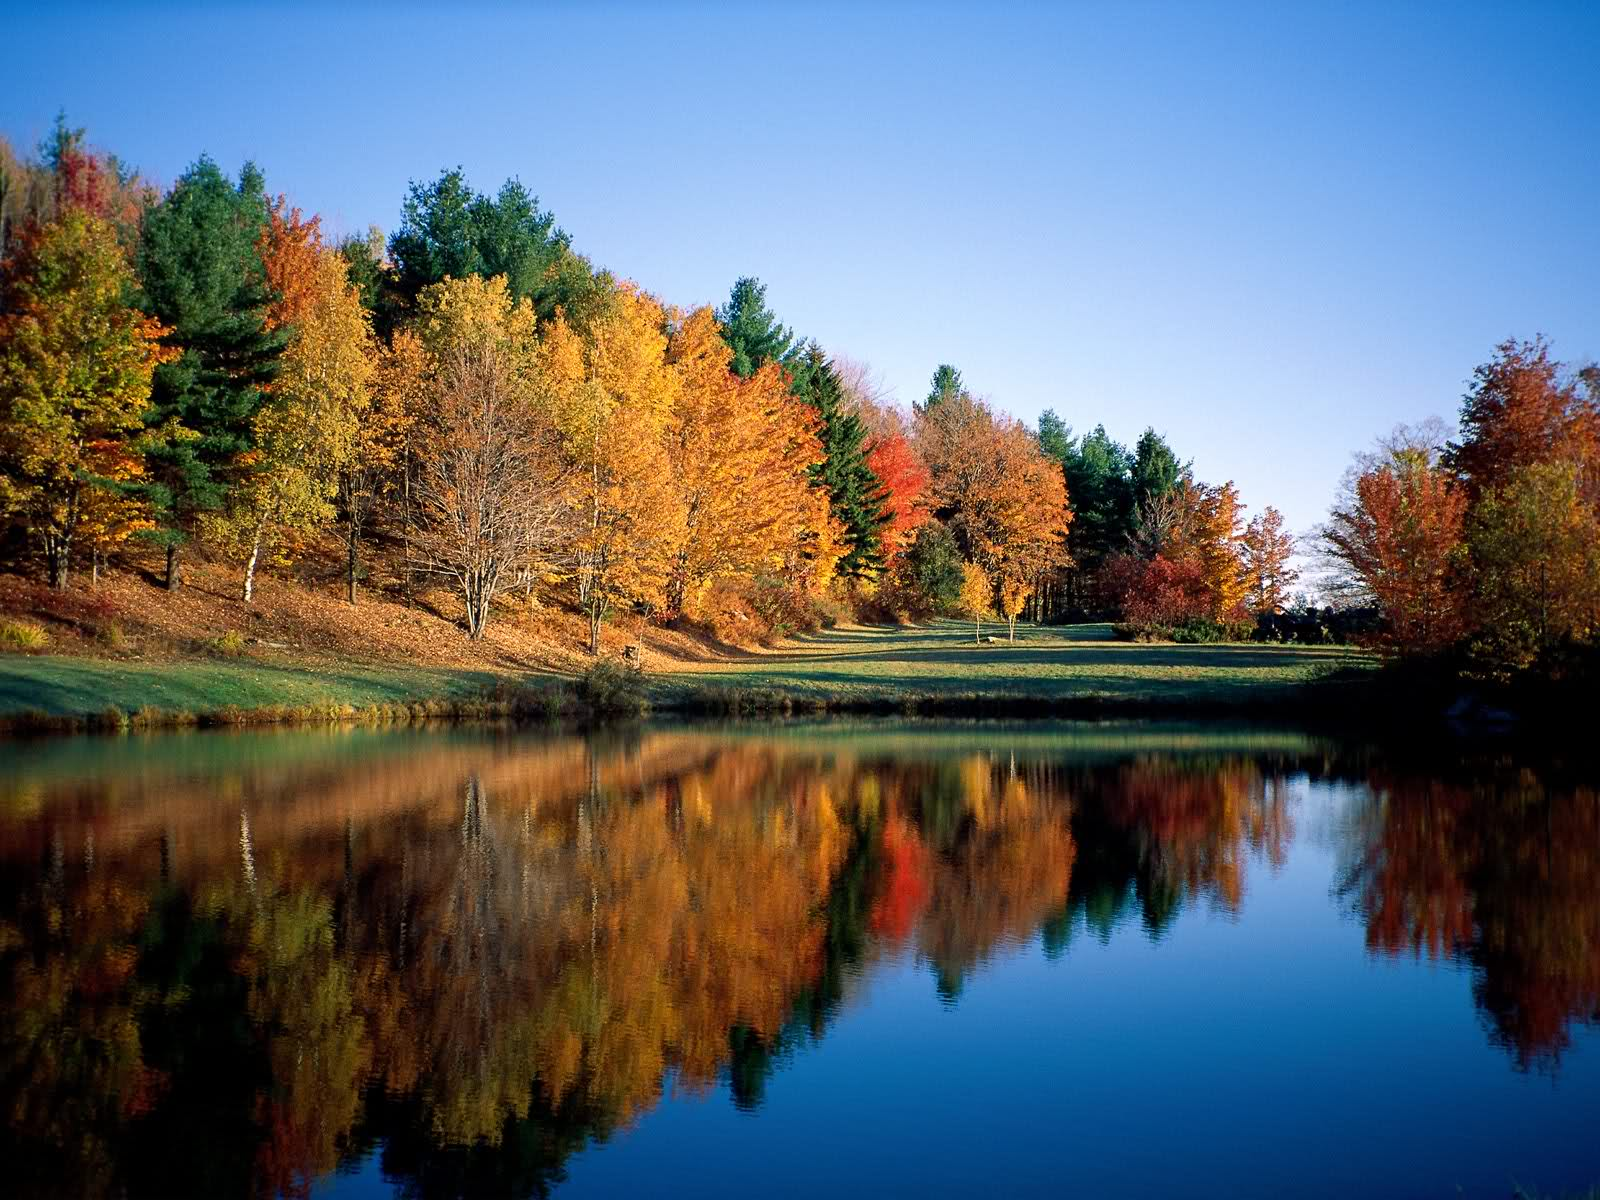 free wallpaper of natural scenery early autumnclick to download